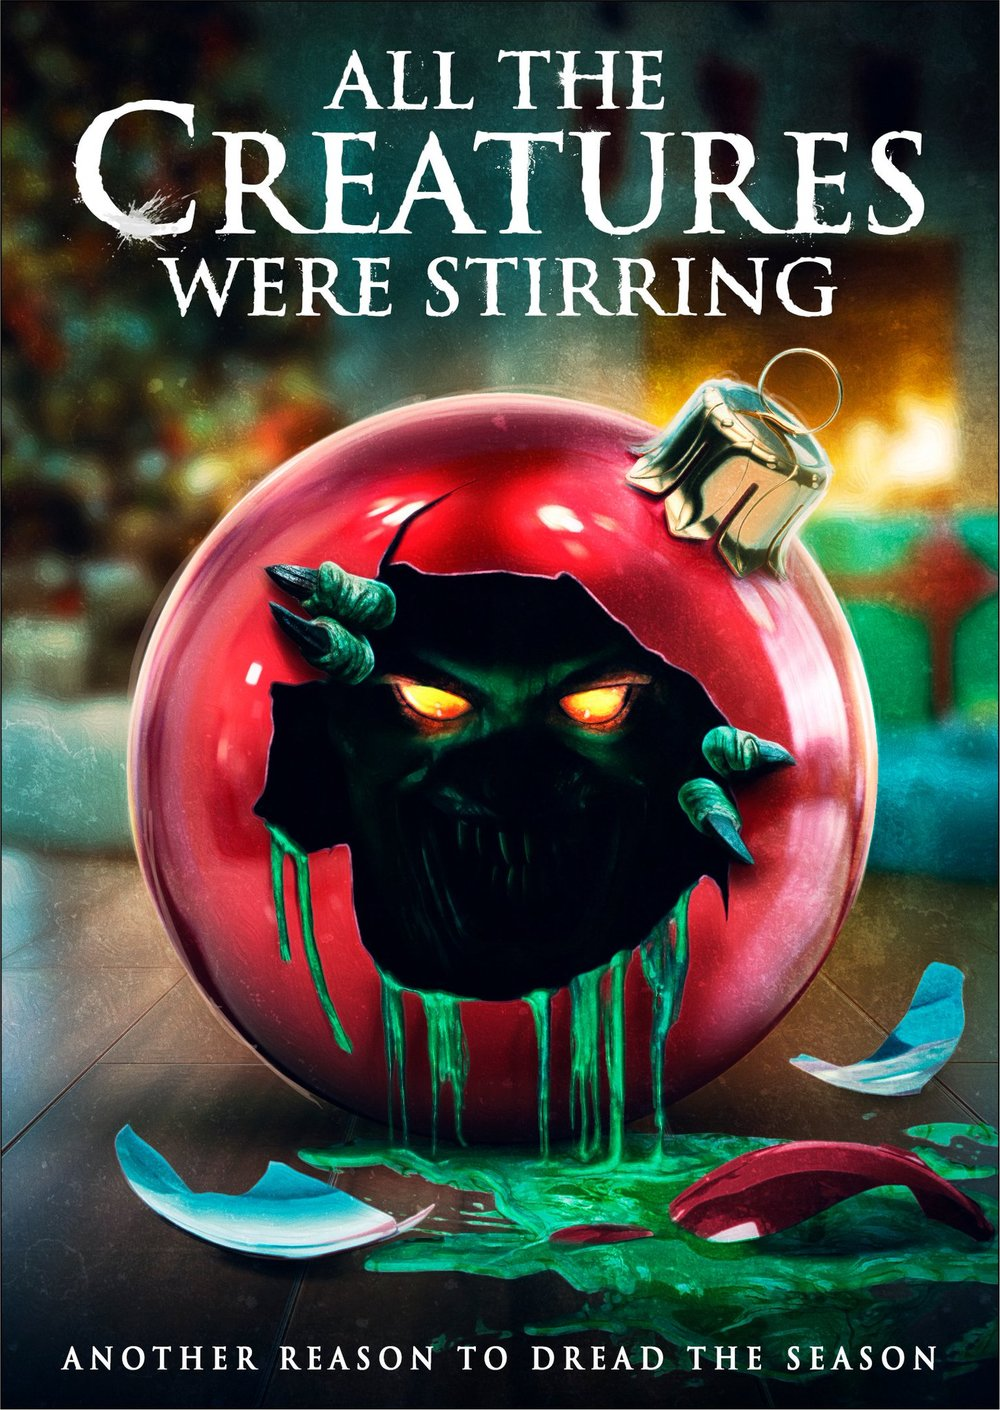 christmas-takes-a-sadistic-turn-in-this-trailer-for-all-the-creatures-were-stirring2